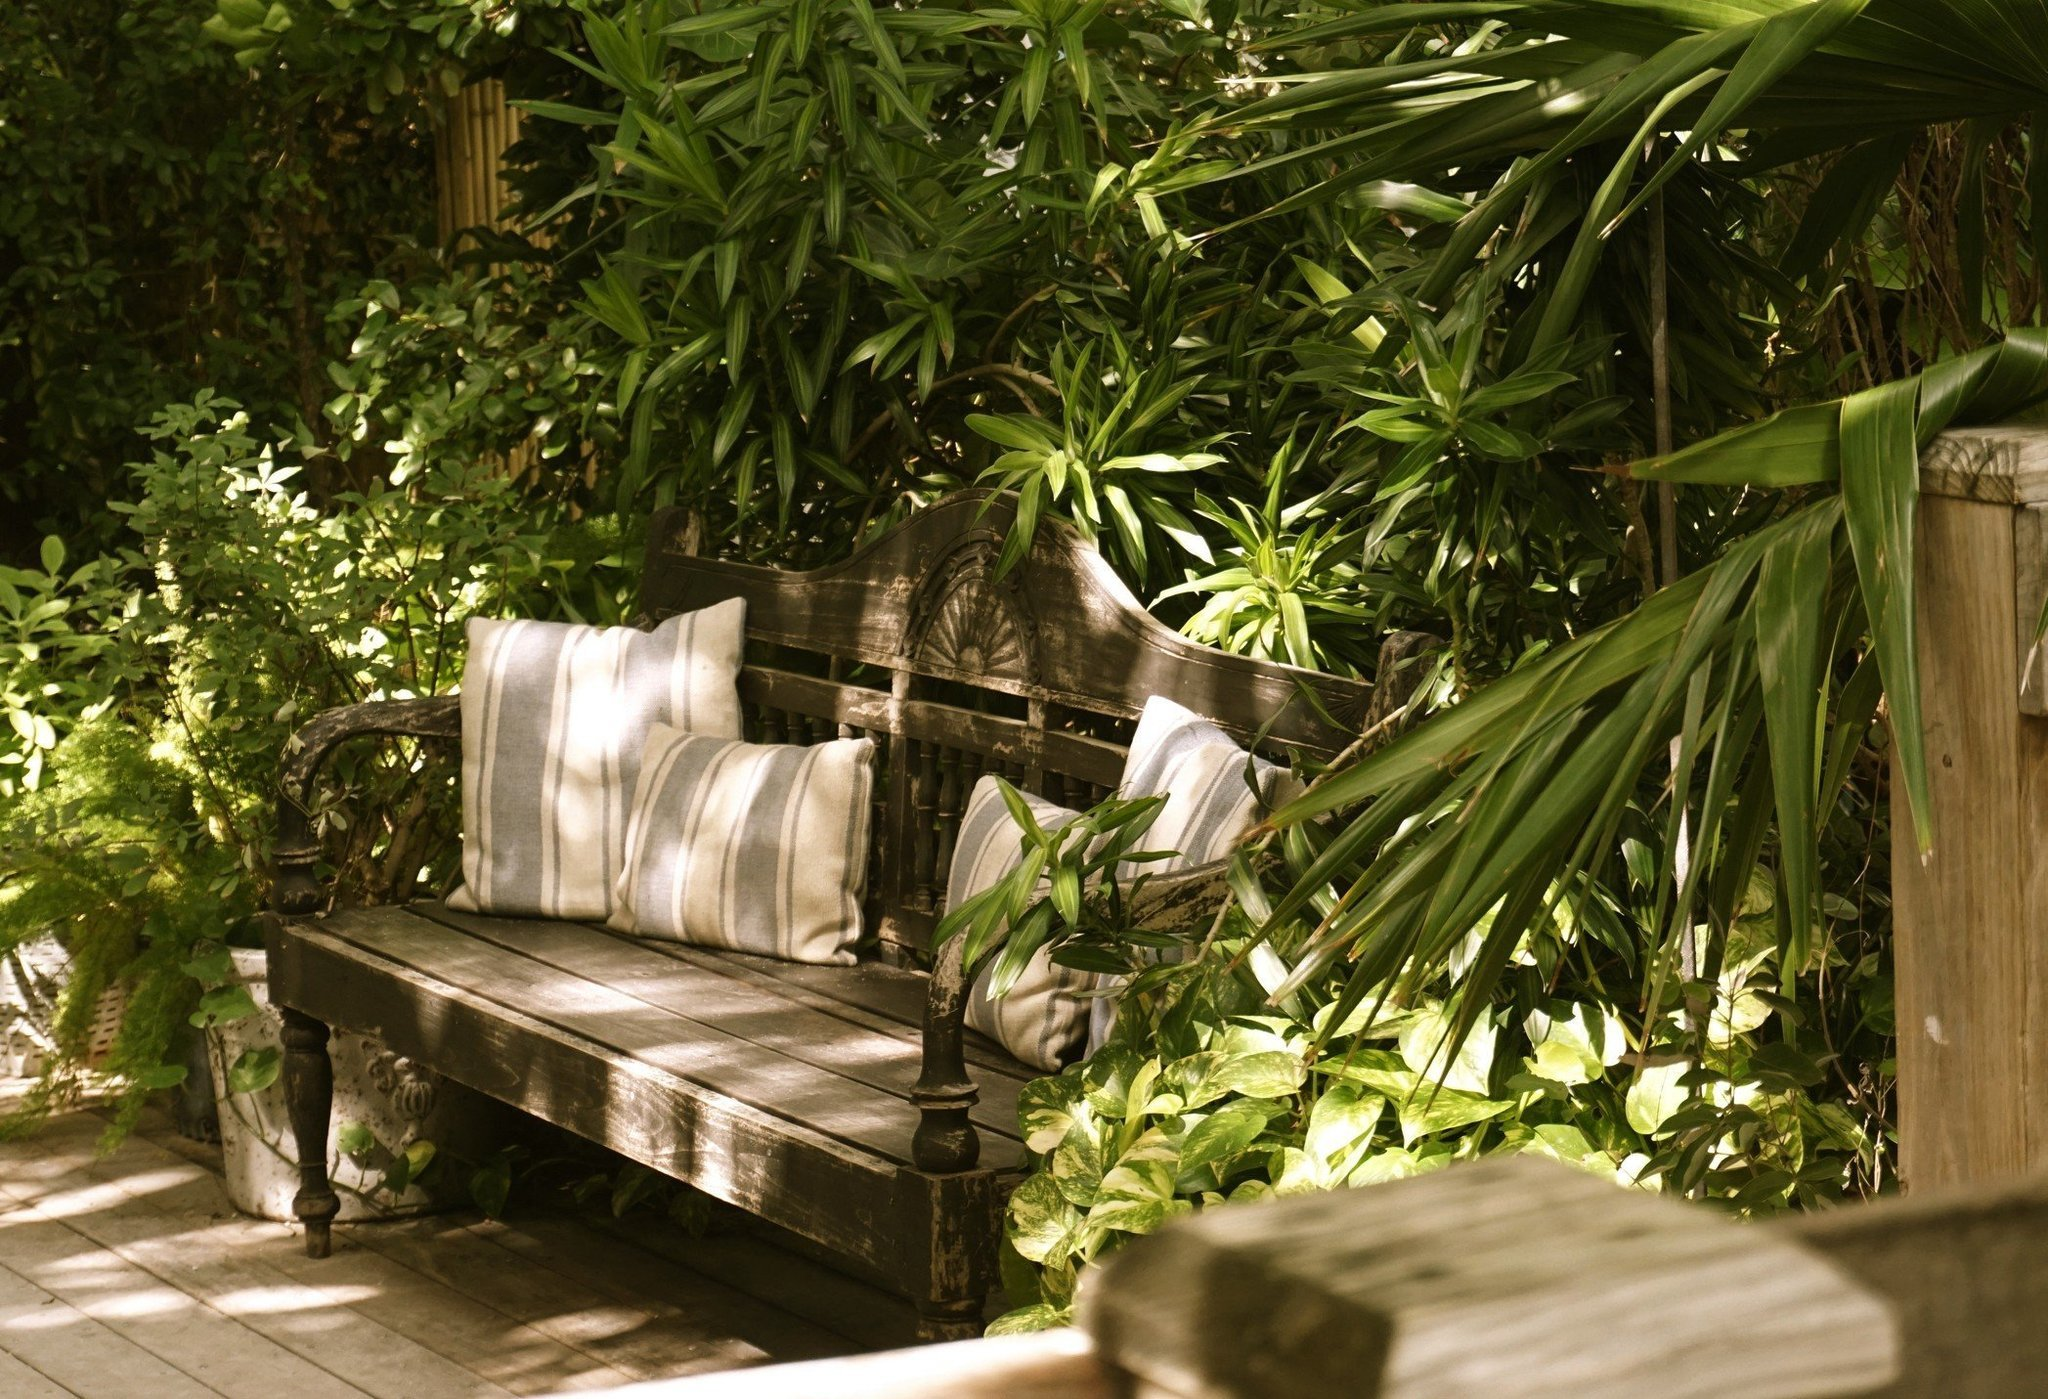 Turn your backyard into tropical paradise with tips from the pros Sun Sentinel ~ 07234914_Gartengestaltung Ideen Mit Licht